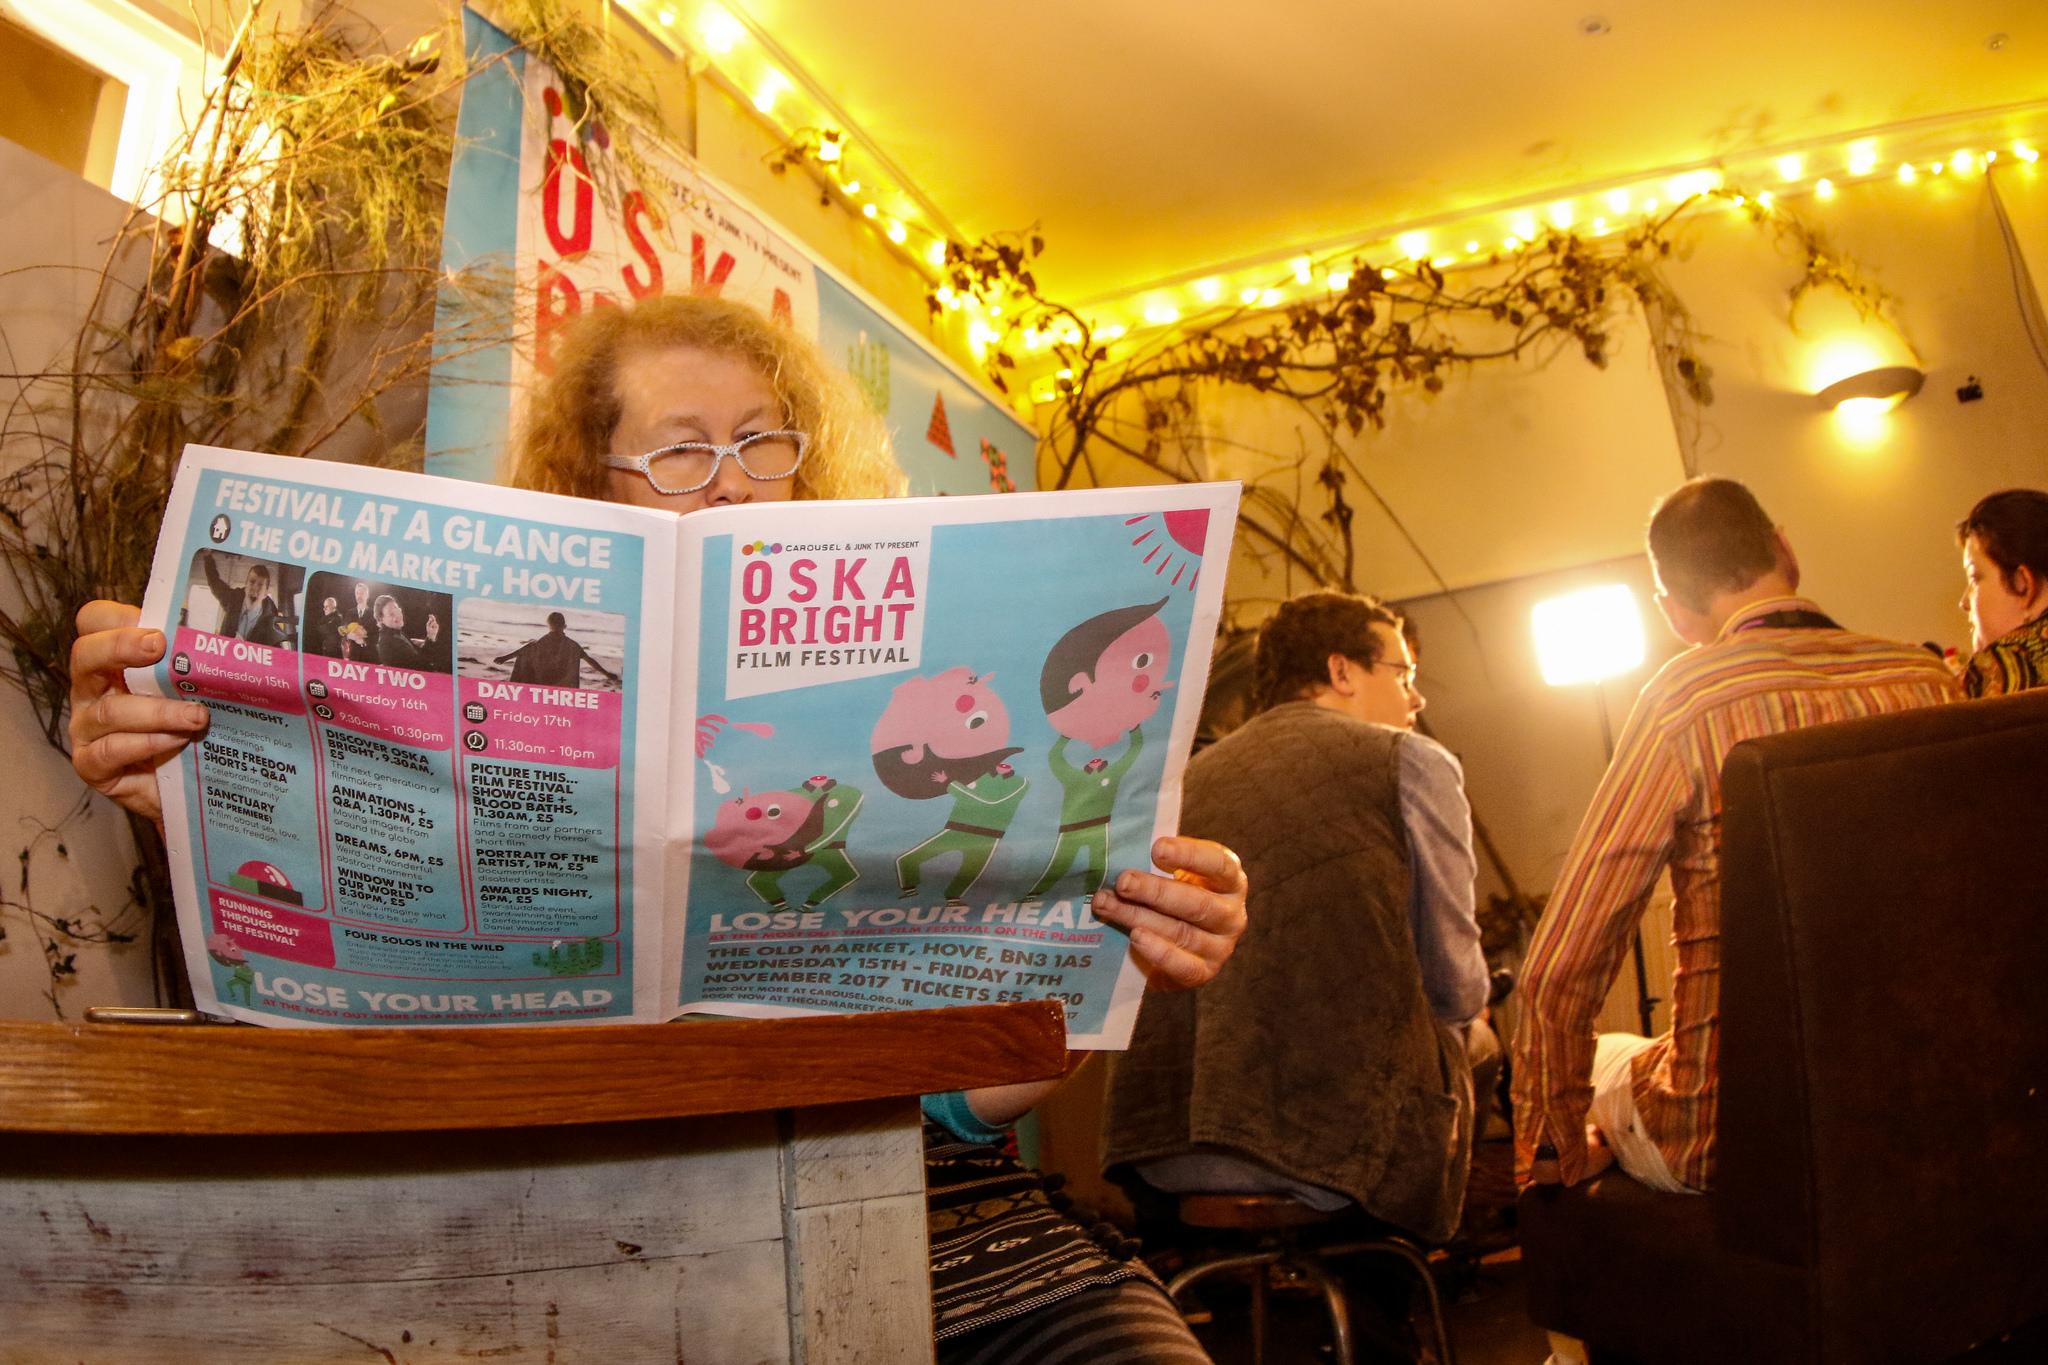 A woman reads the Oska Bright Film Festival programme in the bar at The Old Market.